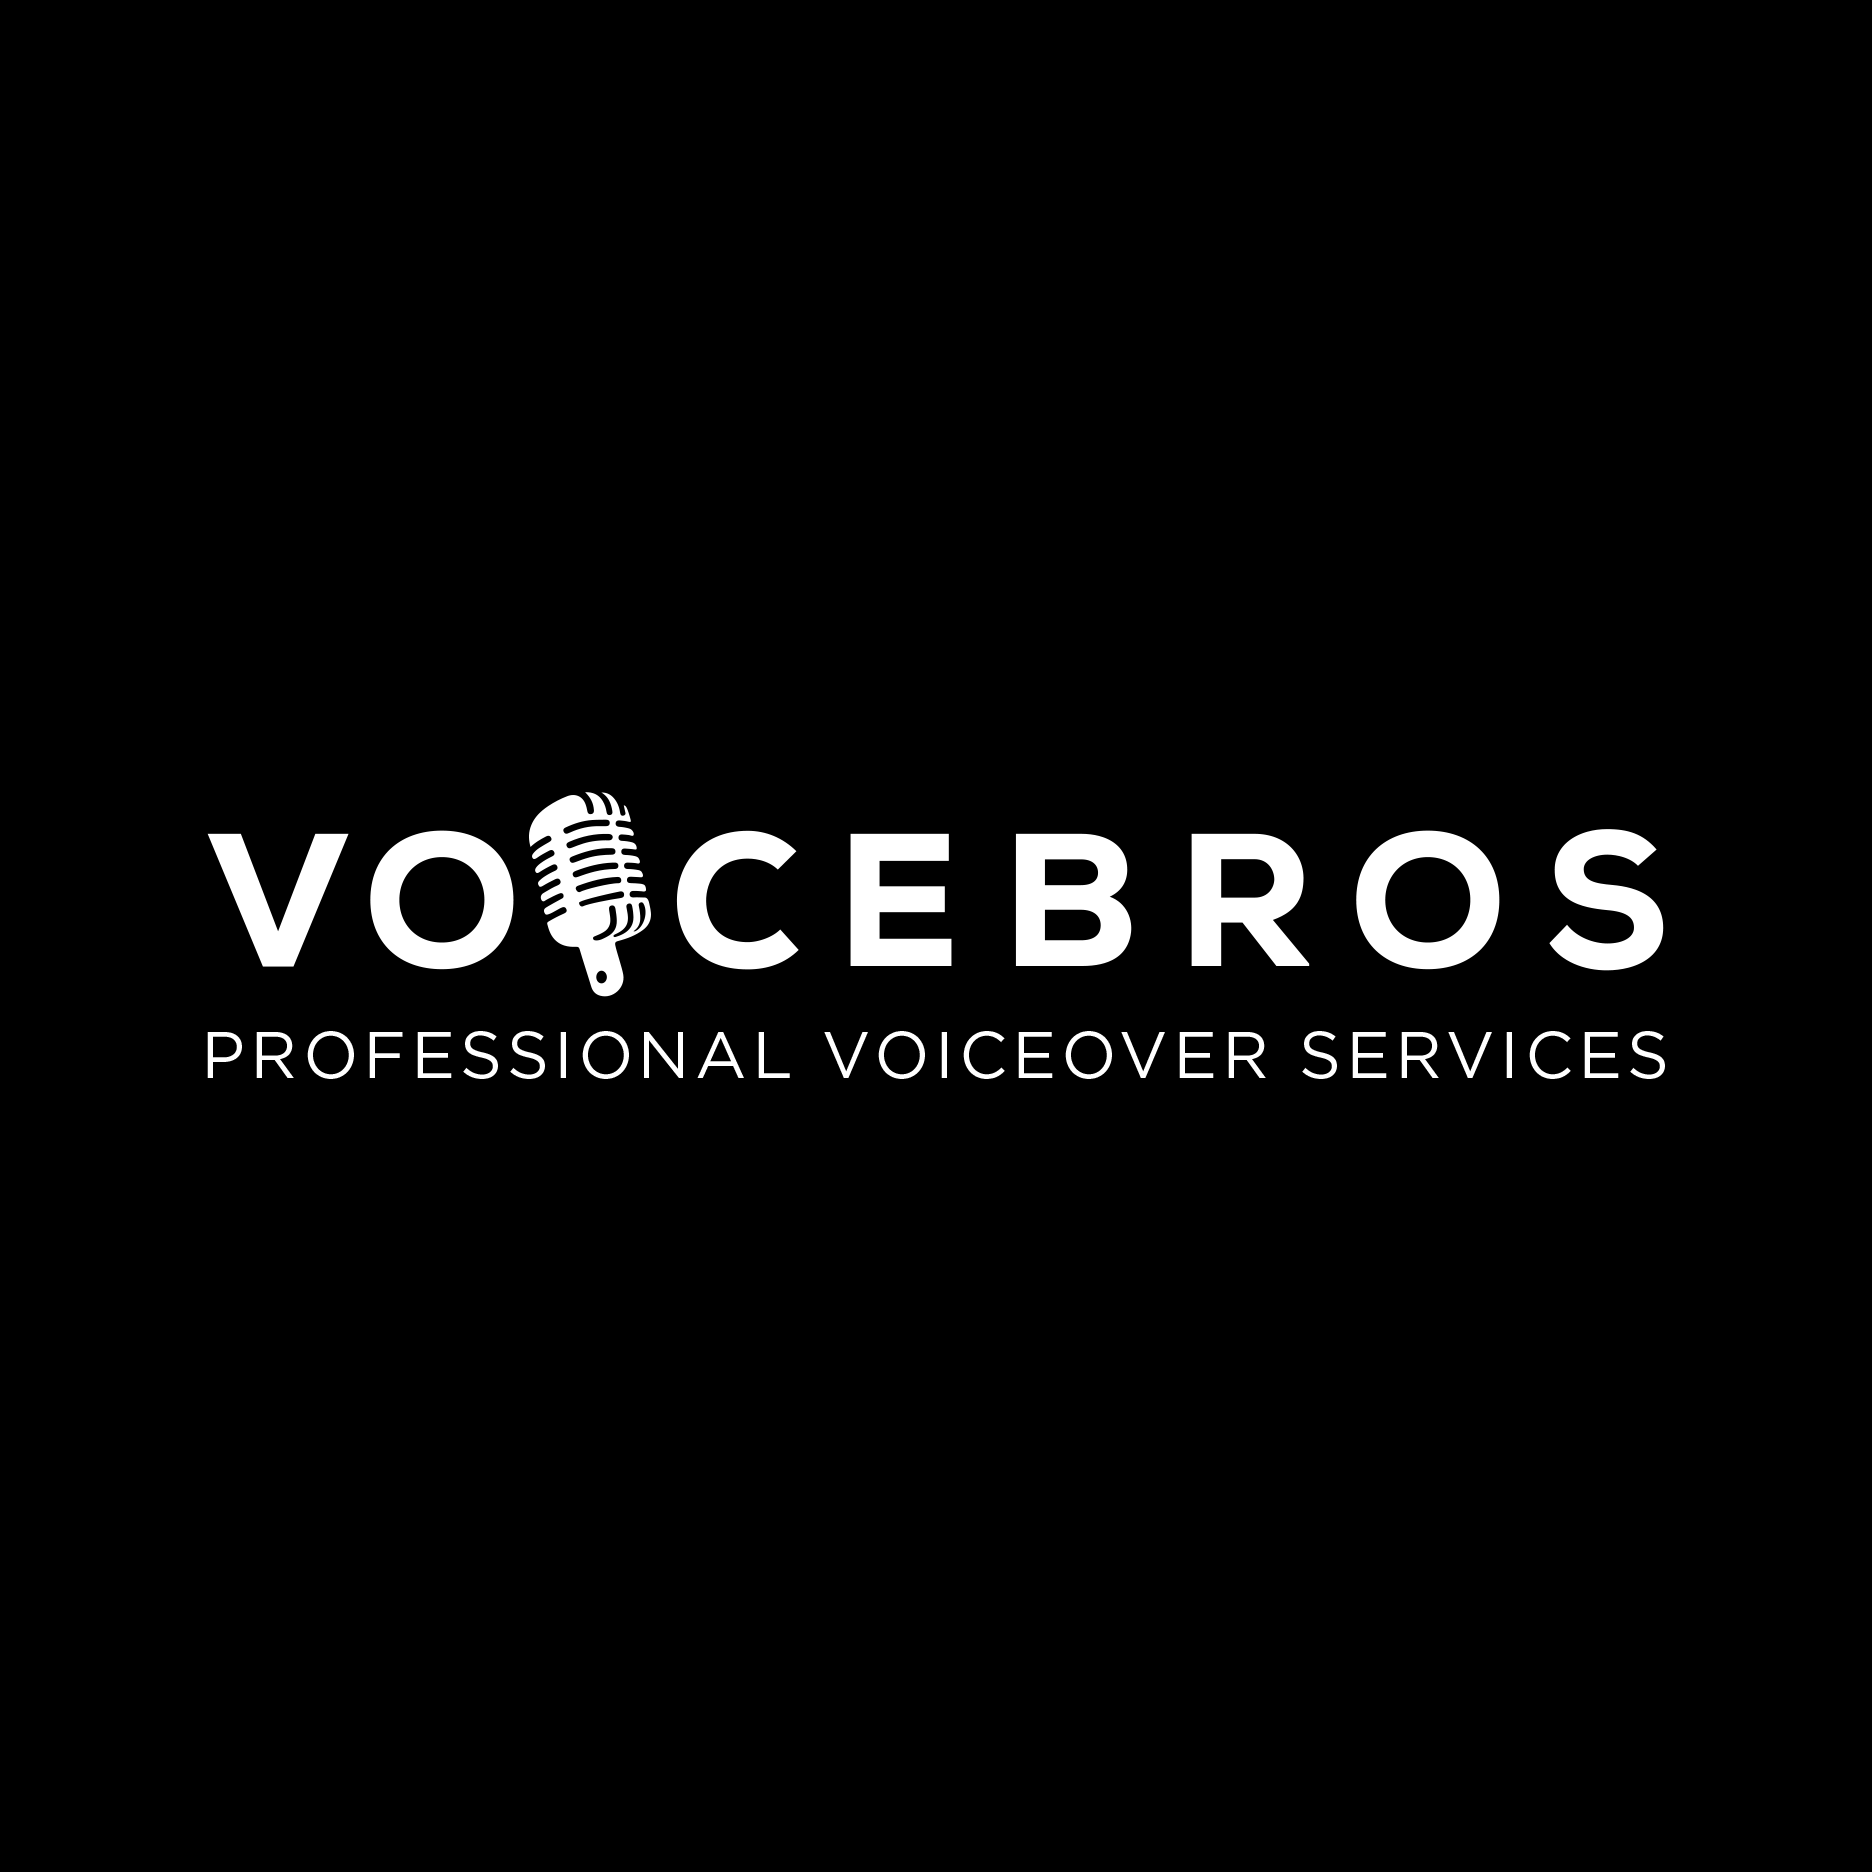 Vicente Bermúdez Fernández is a voice over actor